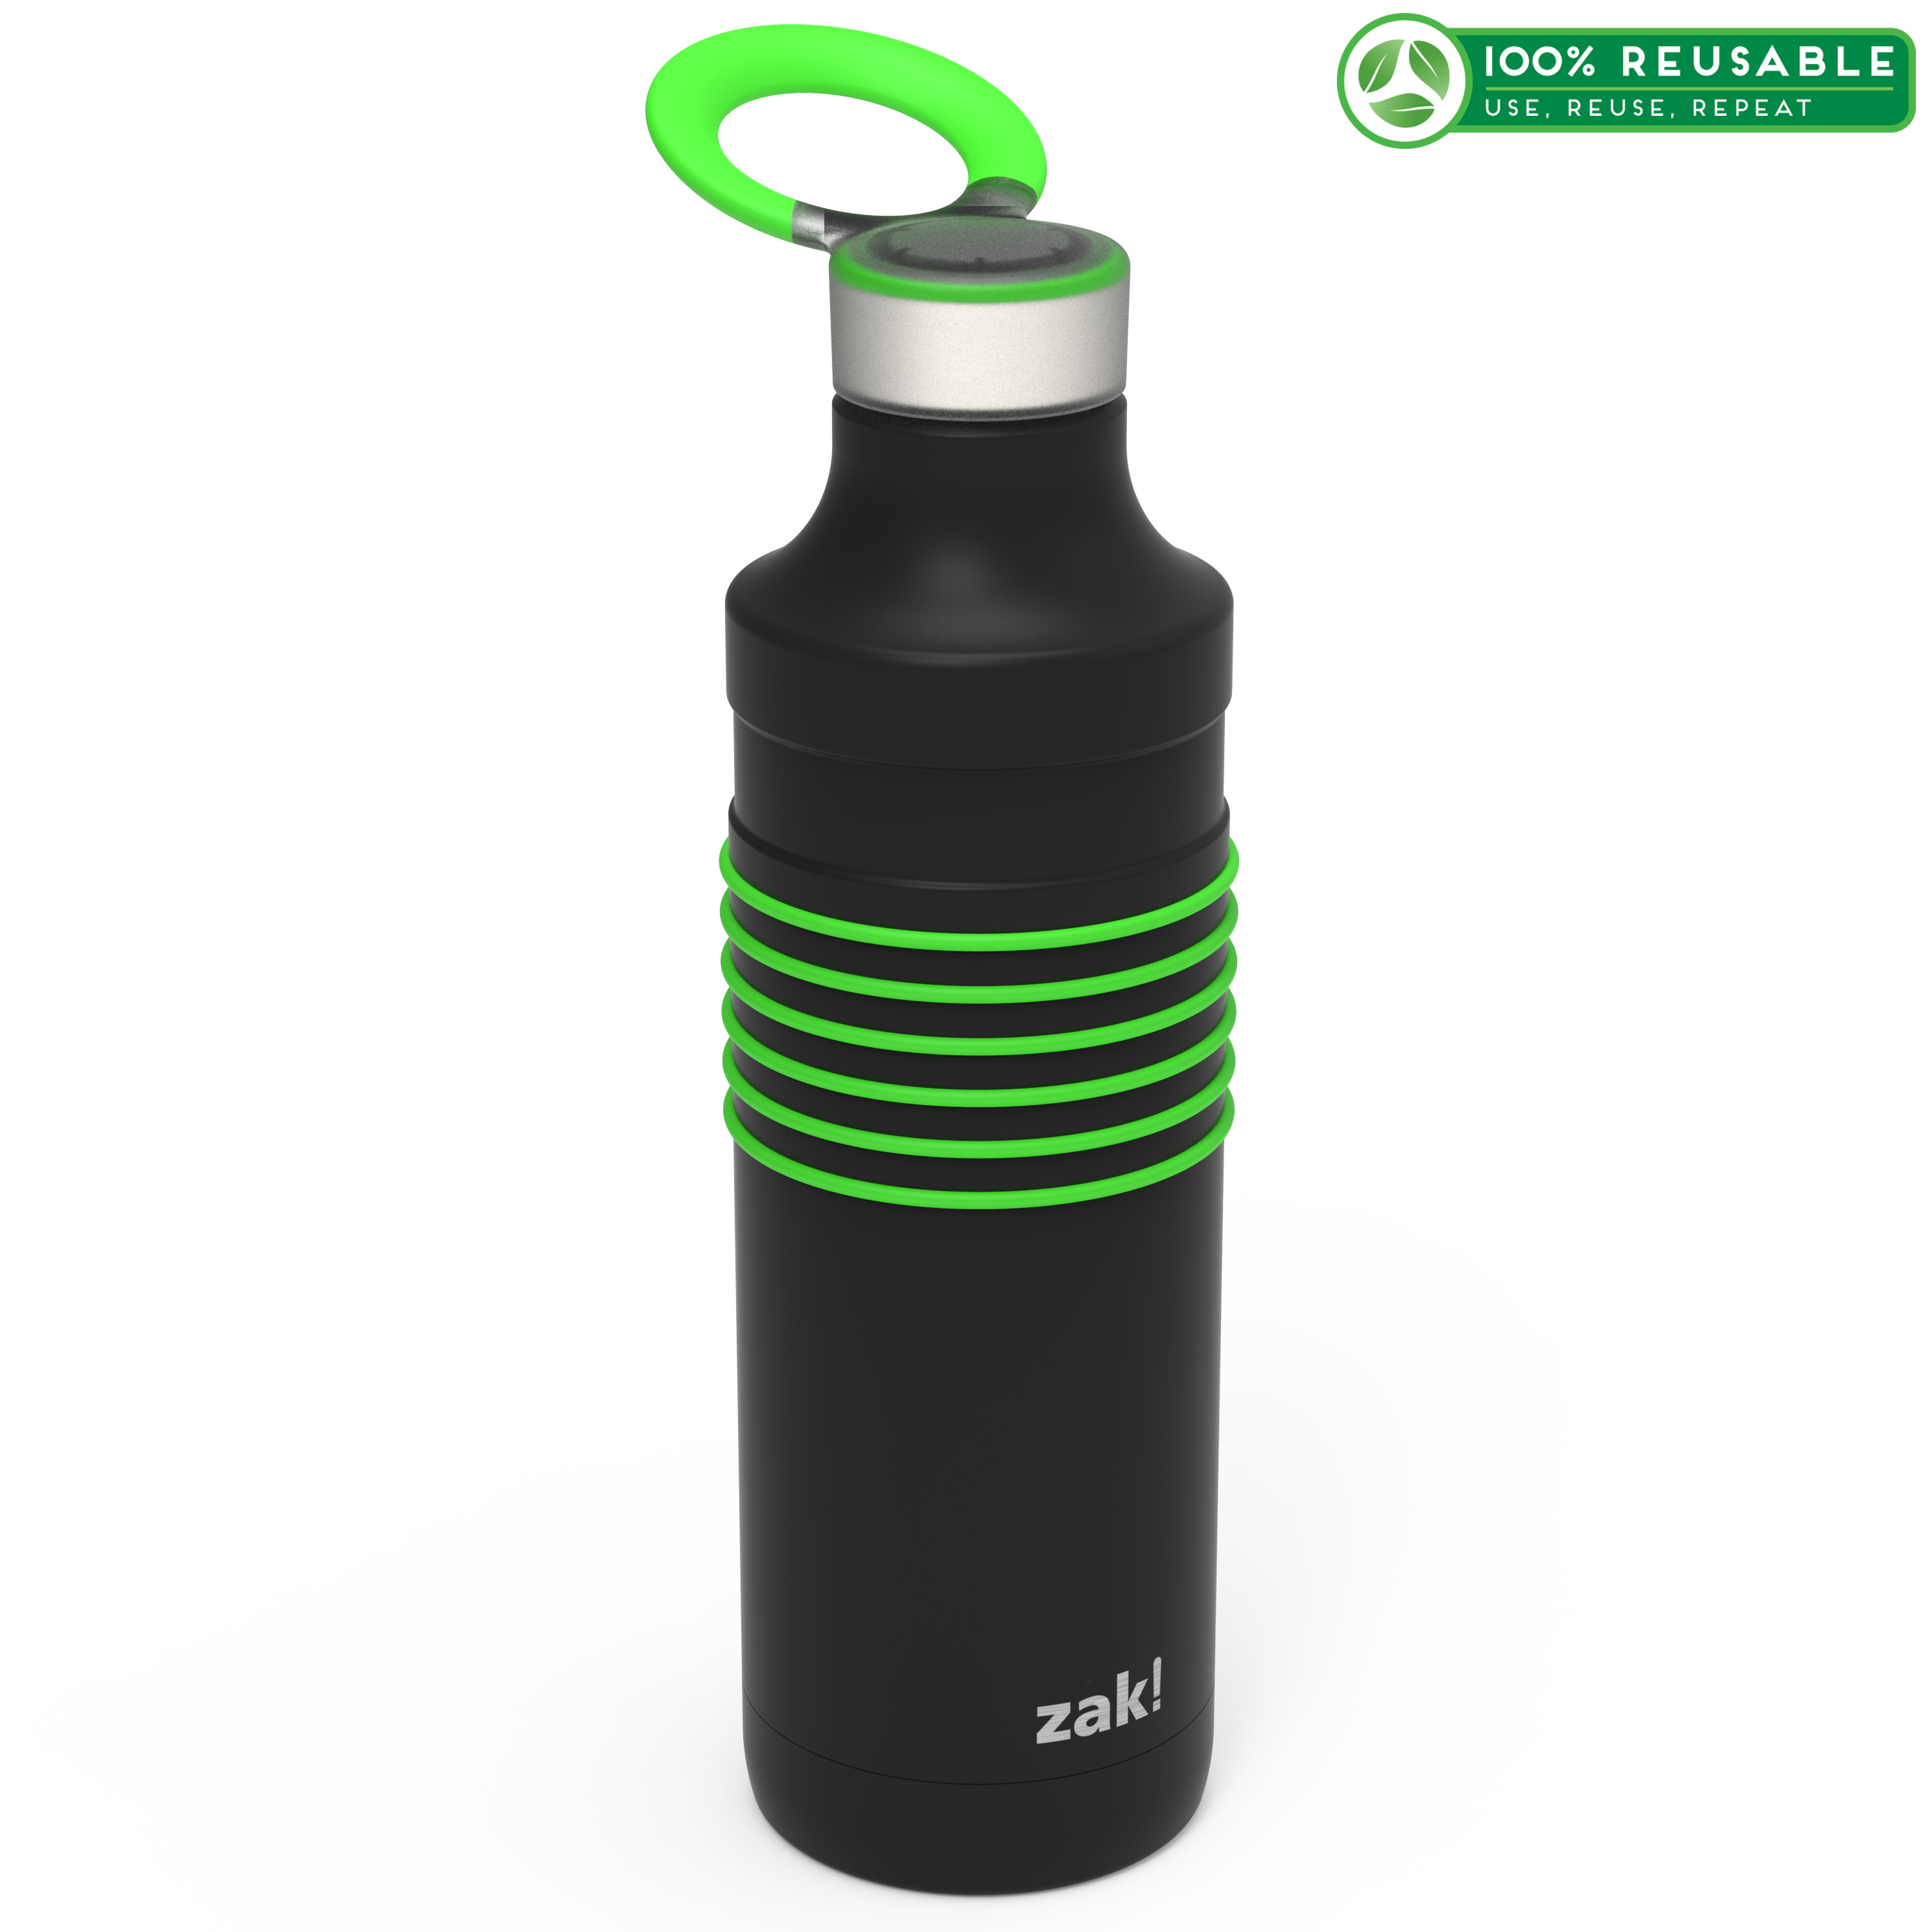 HydraTrak 22 ounce Vacuum Insulated Stainless Steel Tumbler, Black with Green Rings slideshow image 1